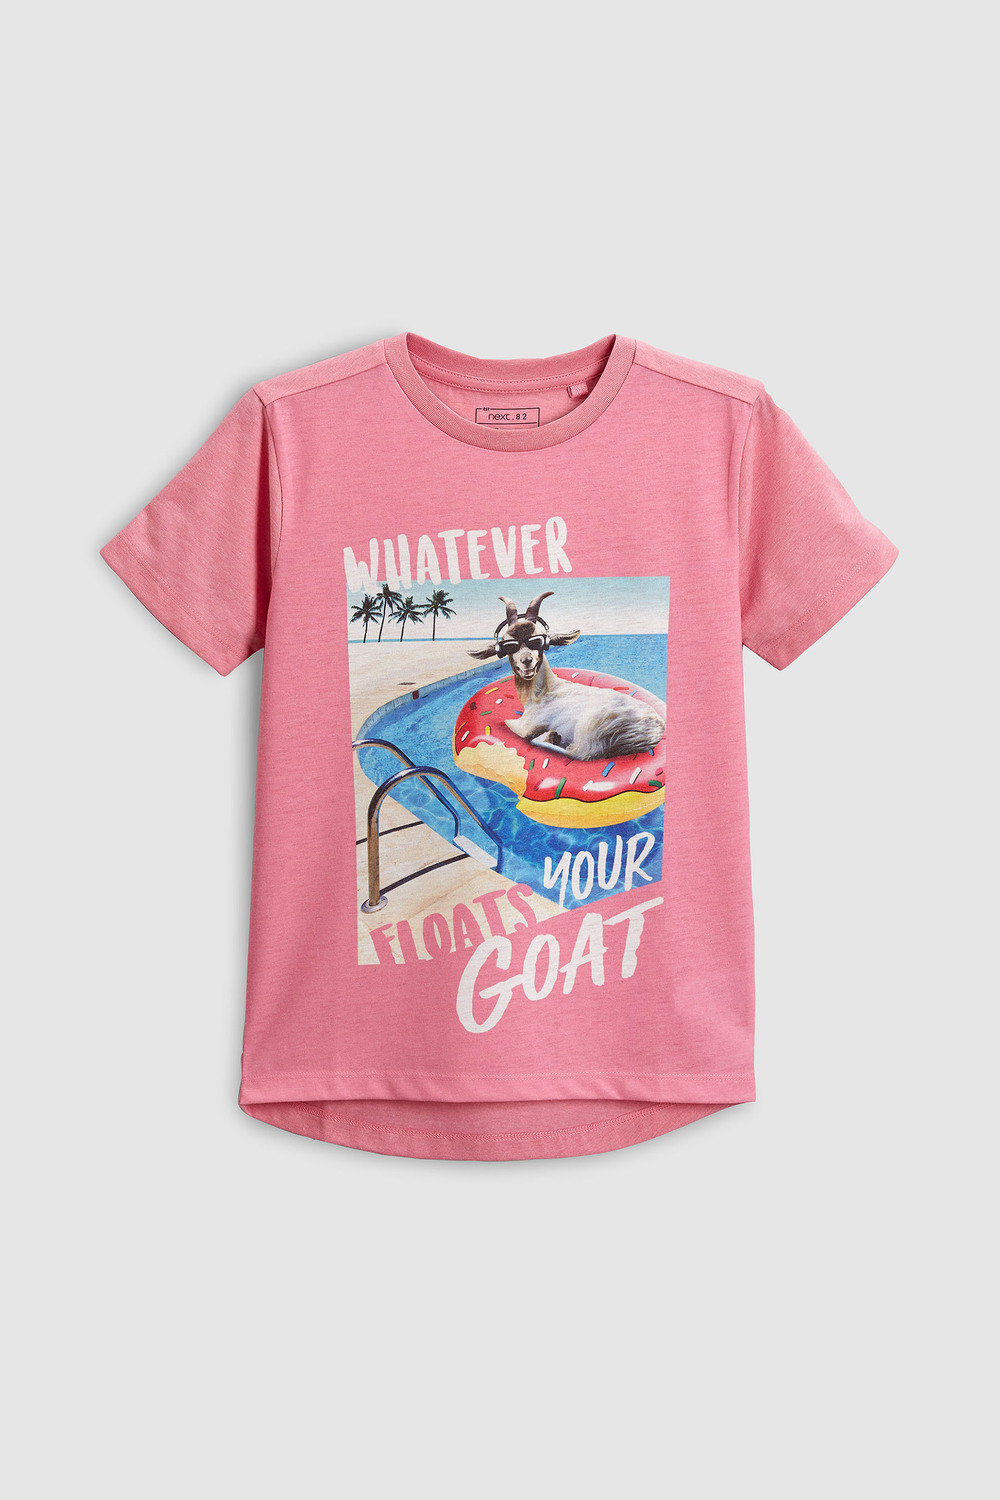 Image result for whatever floats your goat shirt